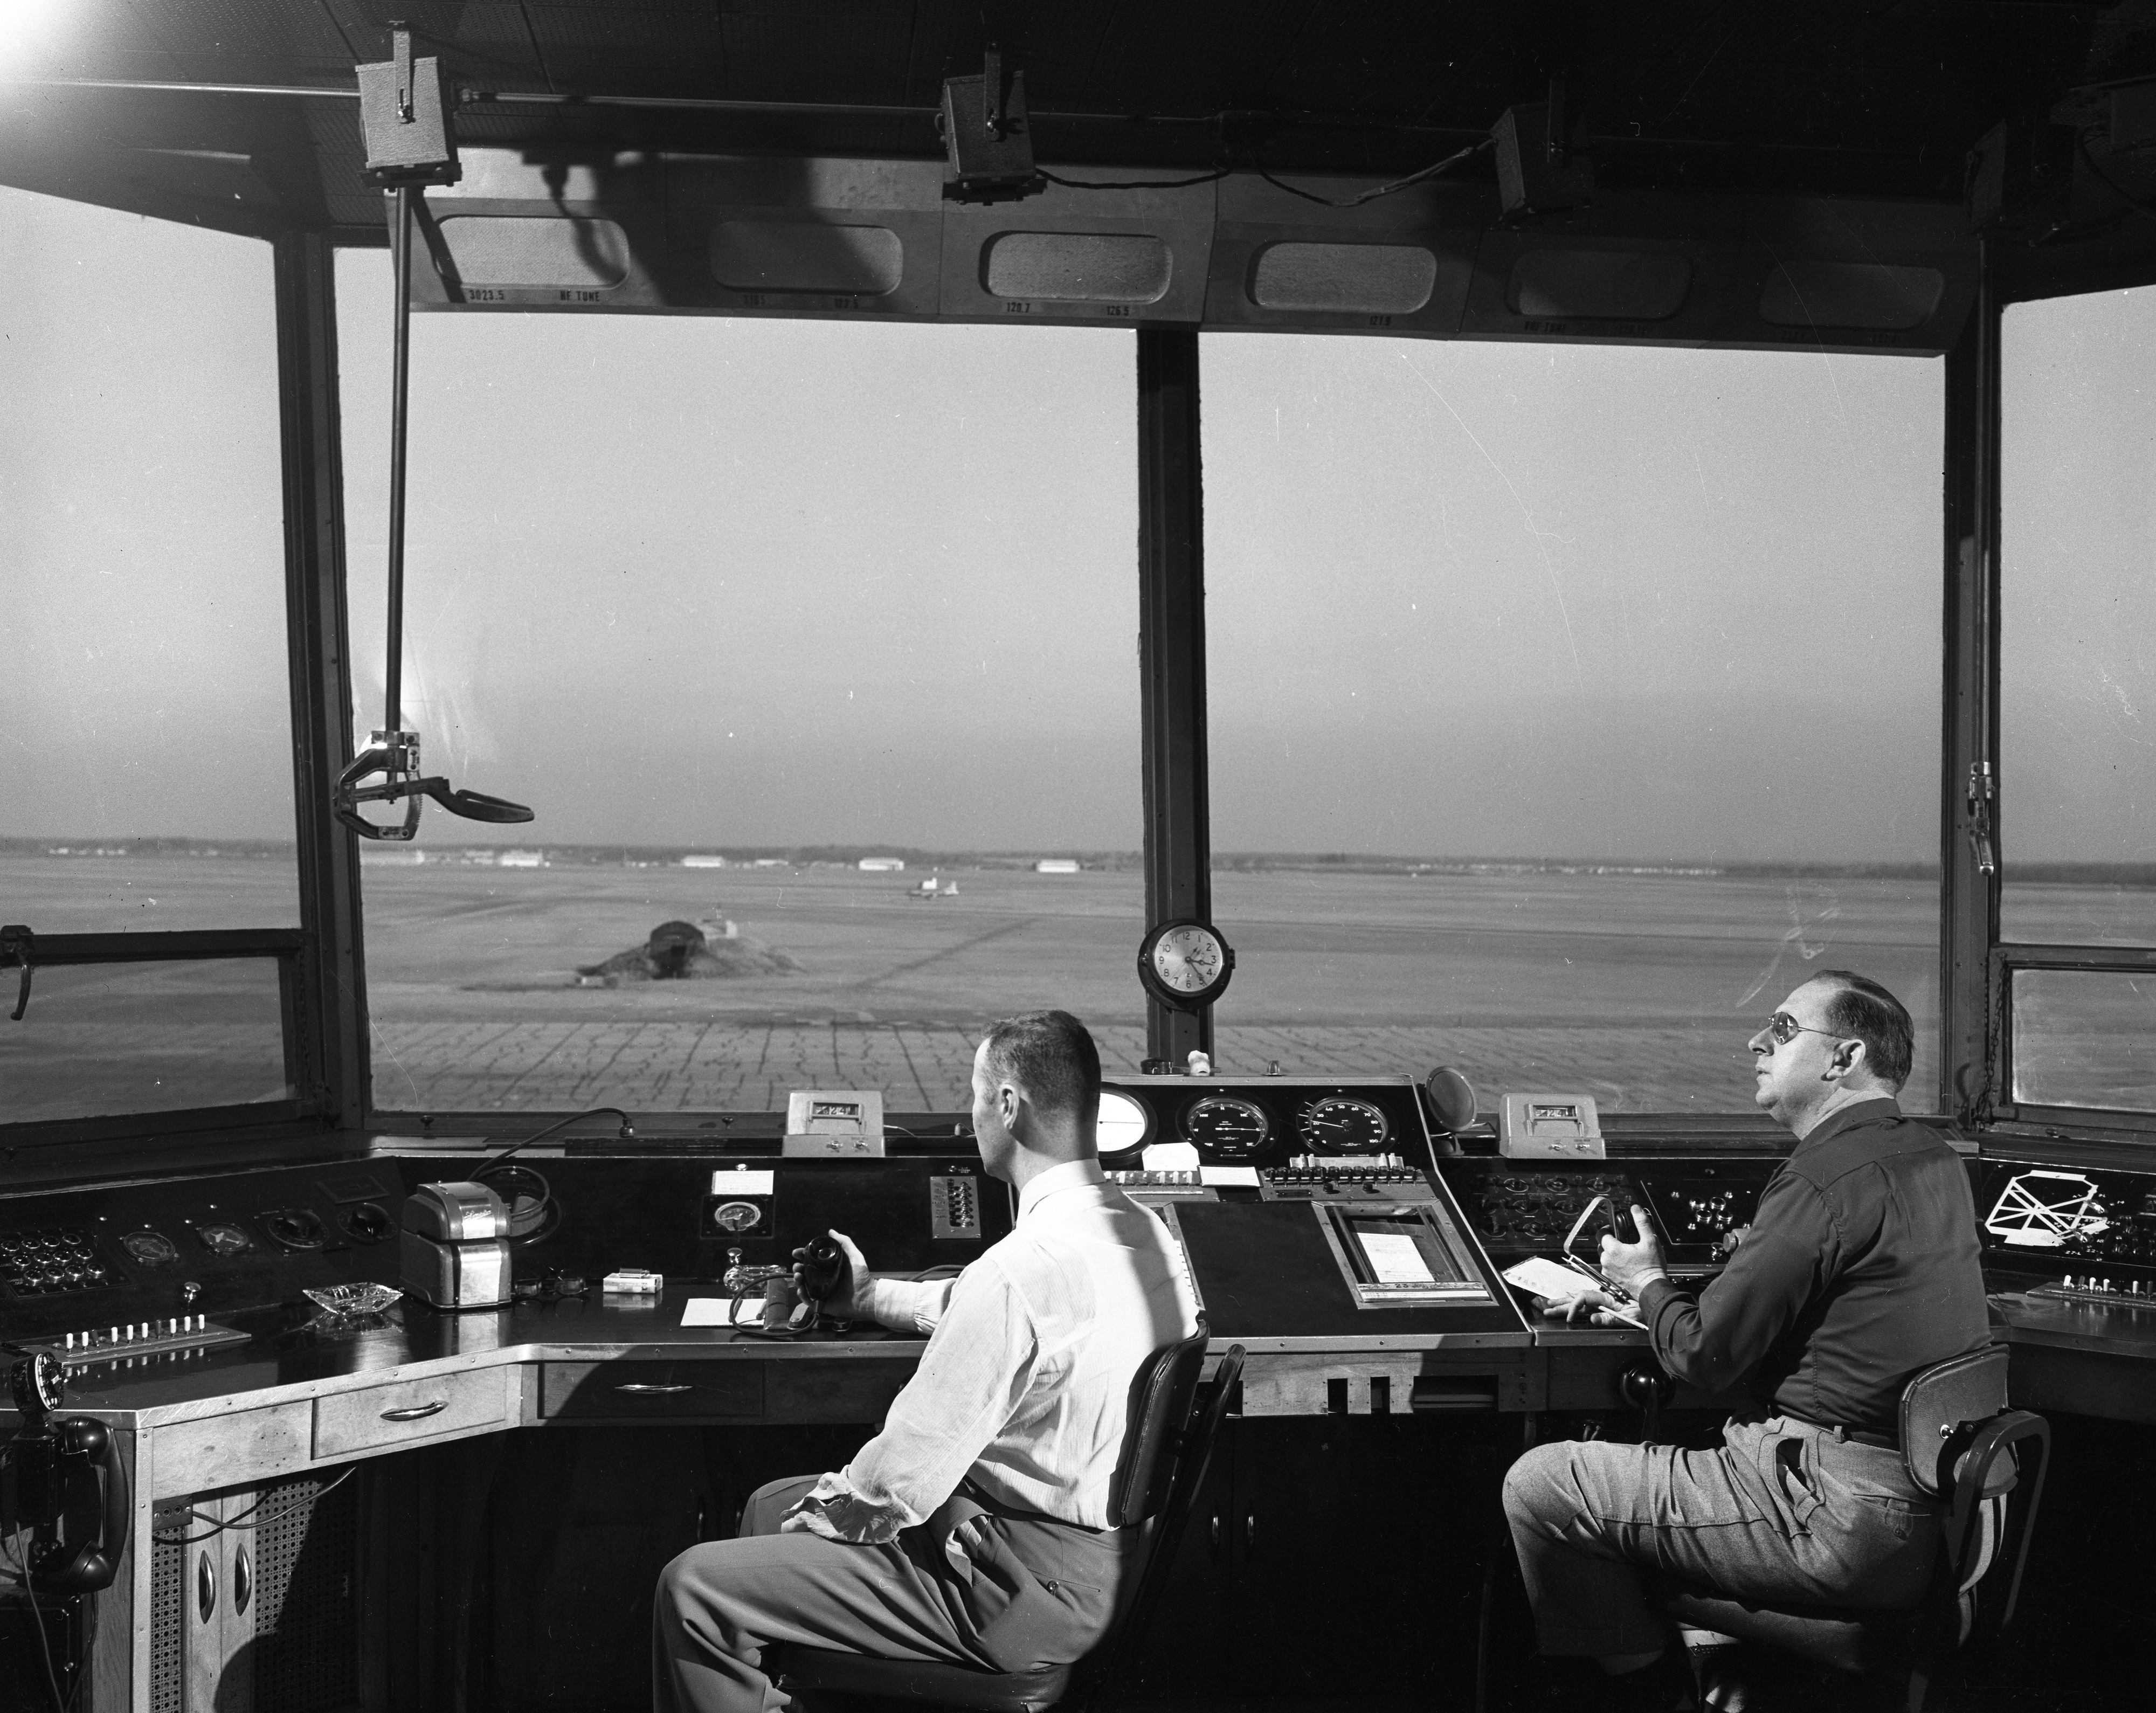 Control Tower at Willow Run Airport, February 1954 image